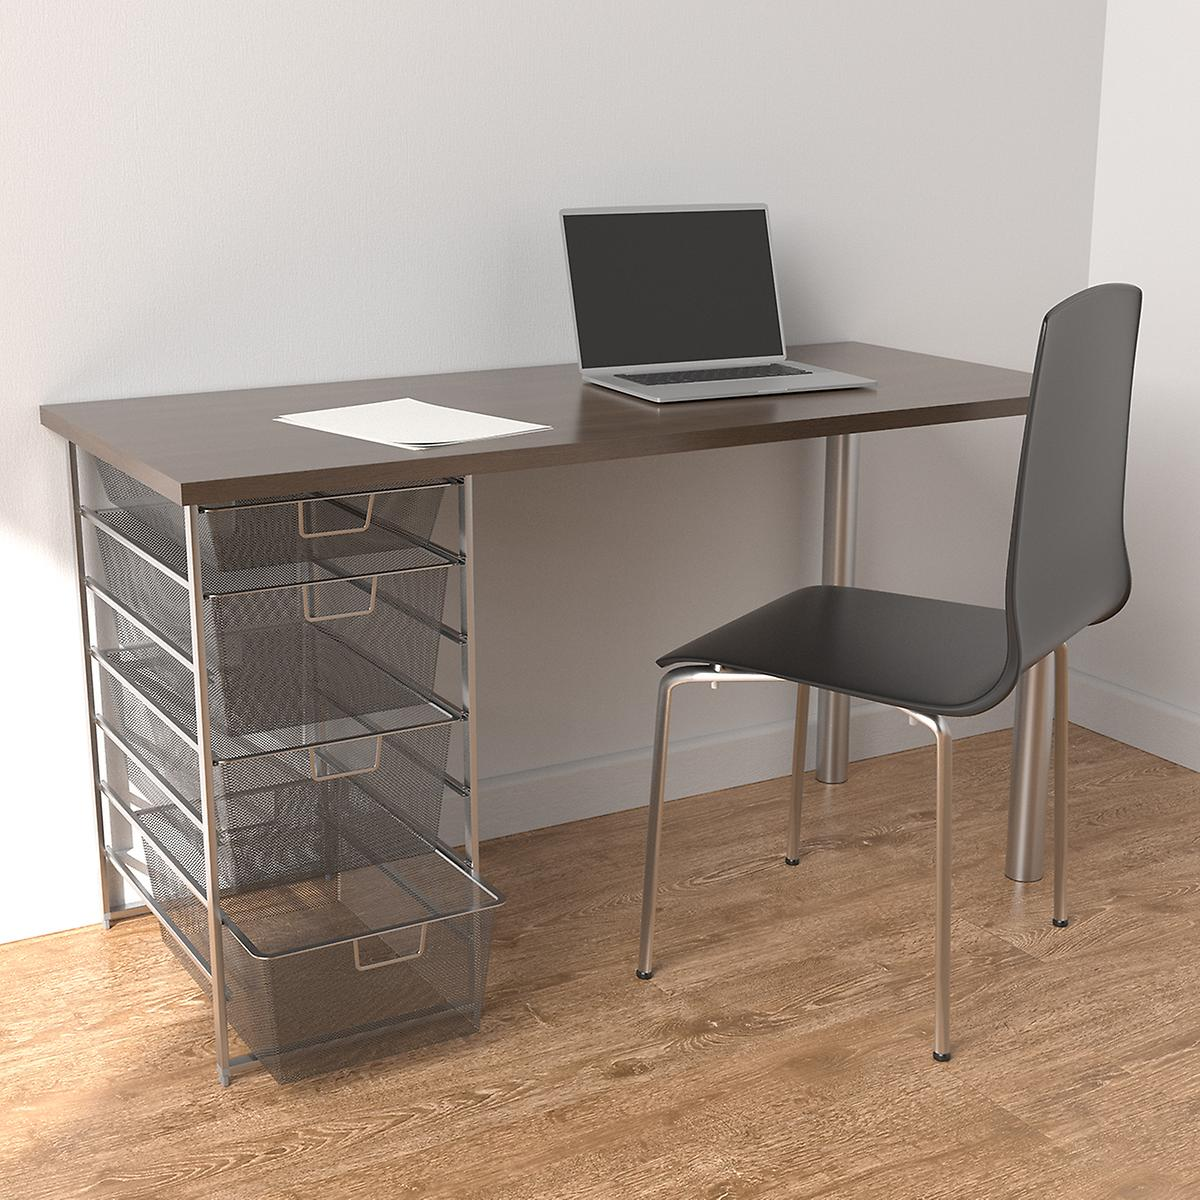 Elfa Platinum & Driftwood Desk with Drawers